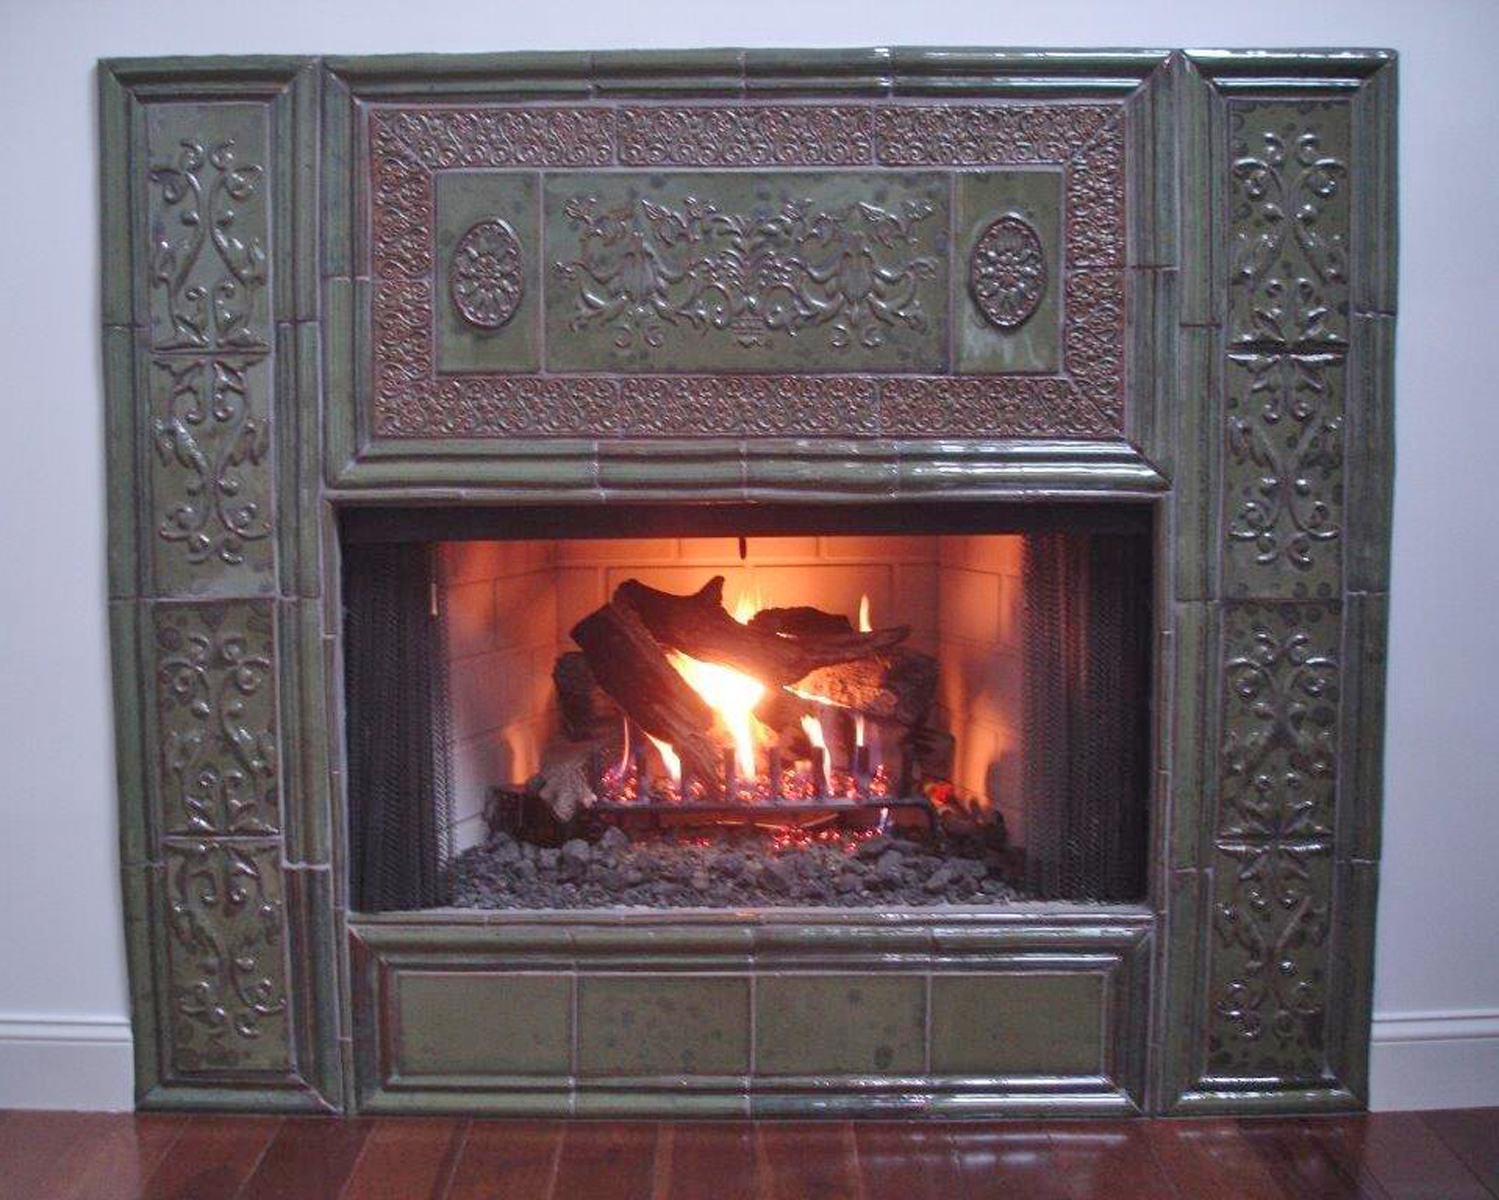 Completed and installed Fireplace in Green Shadow Glaze